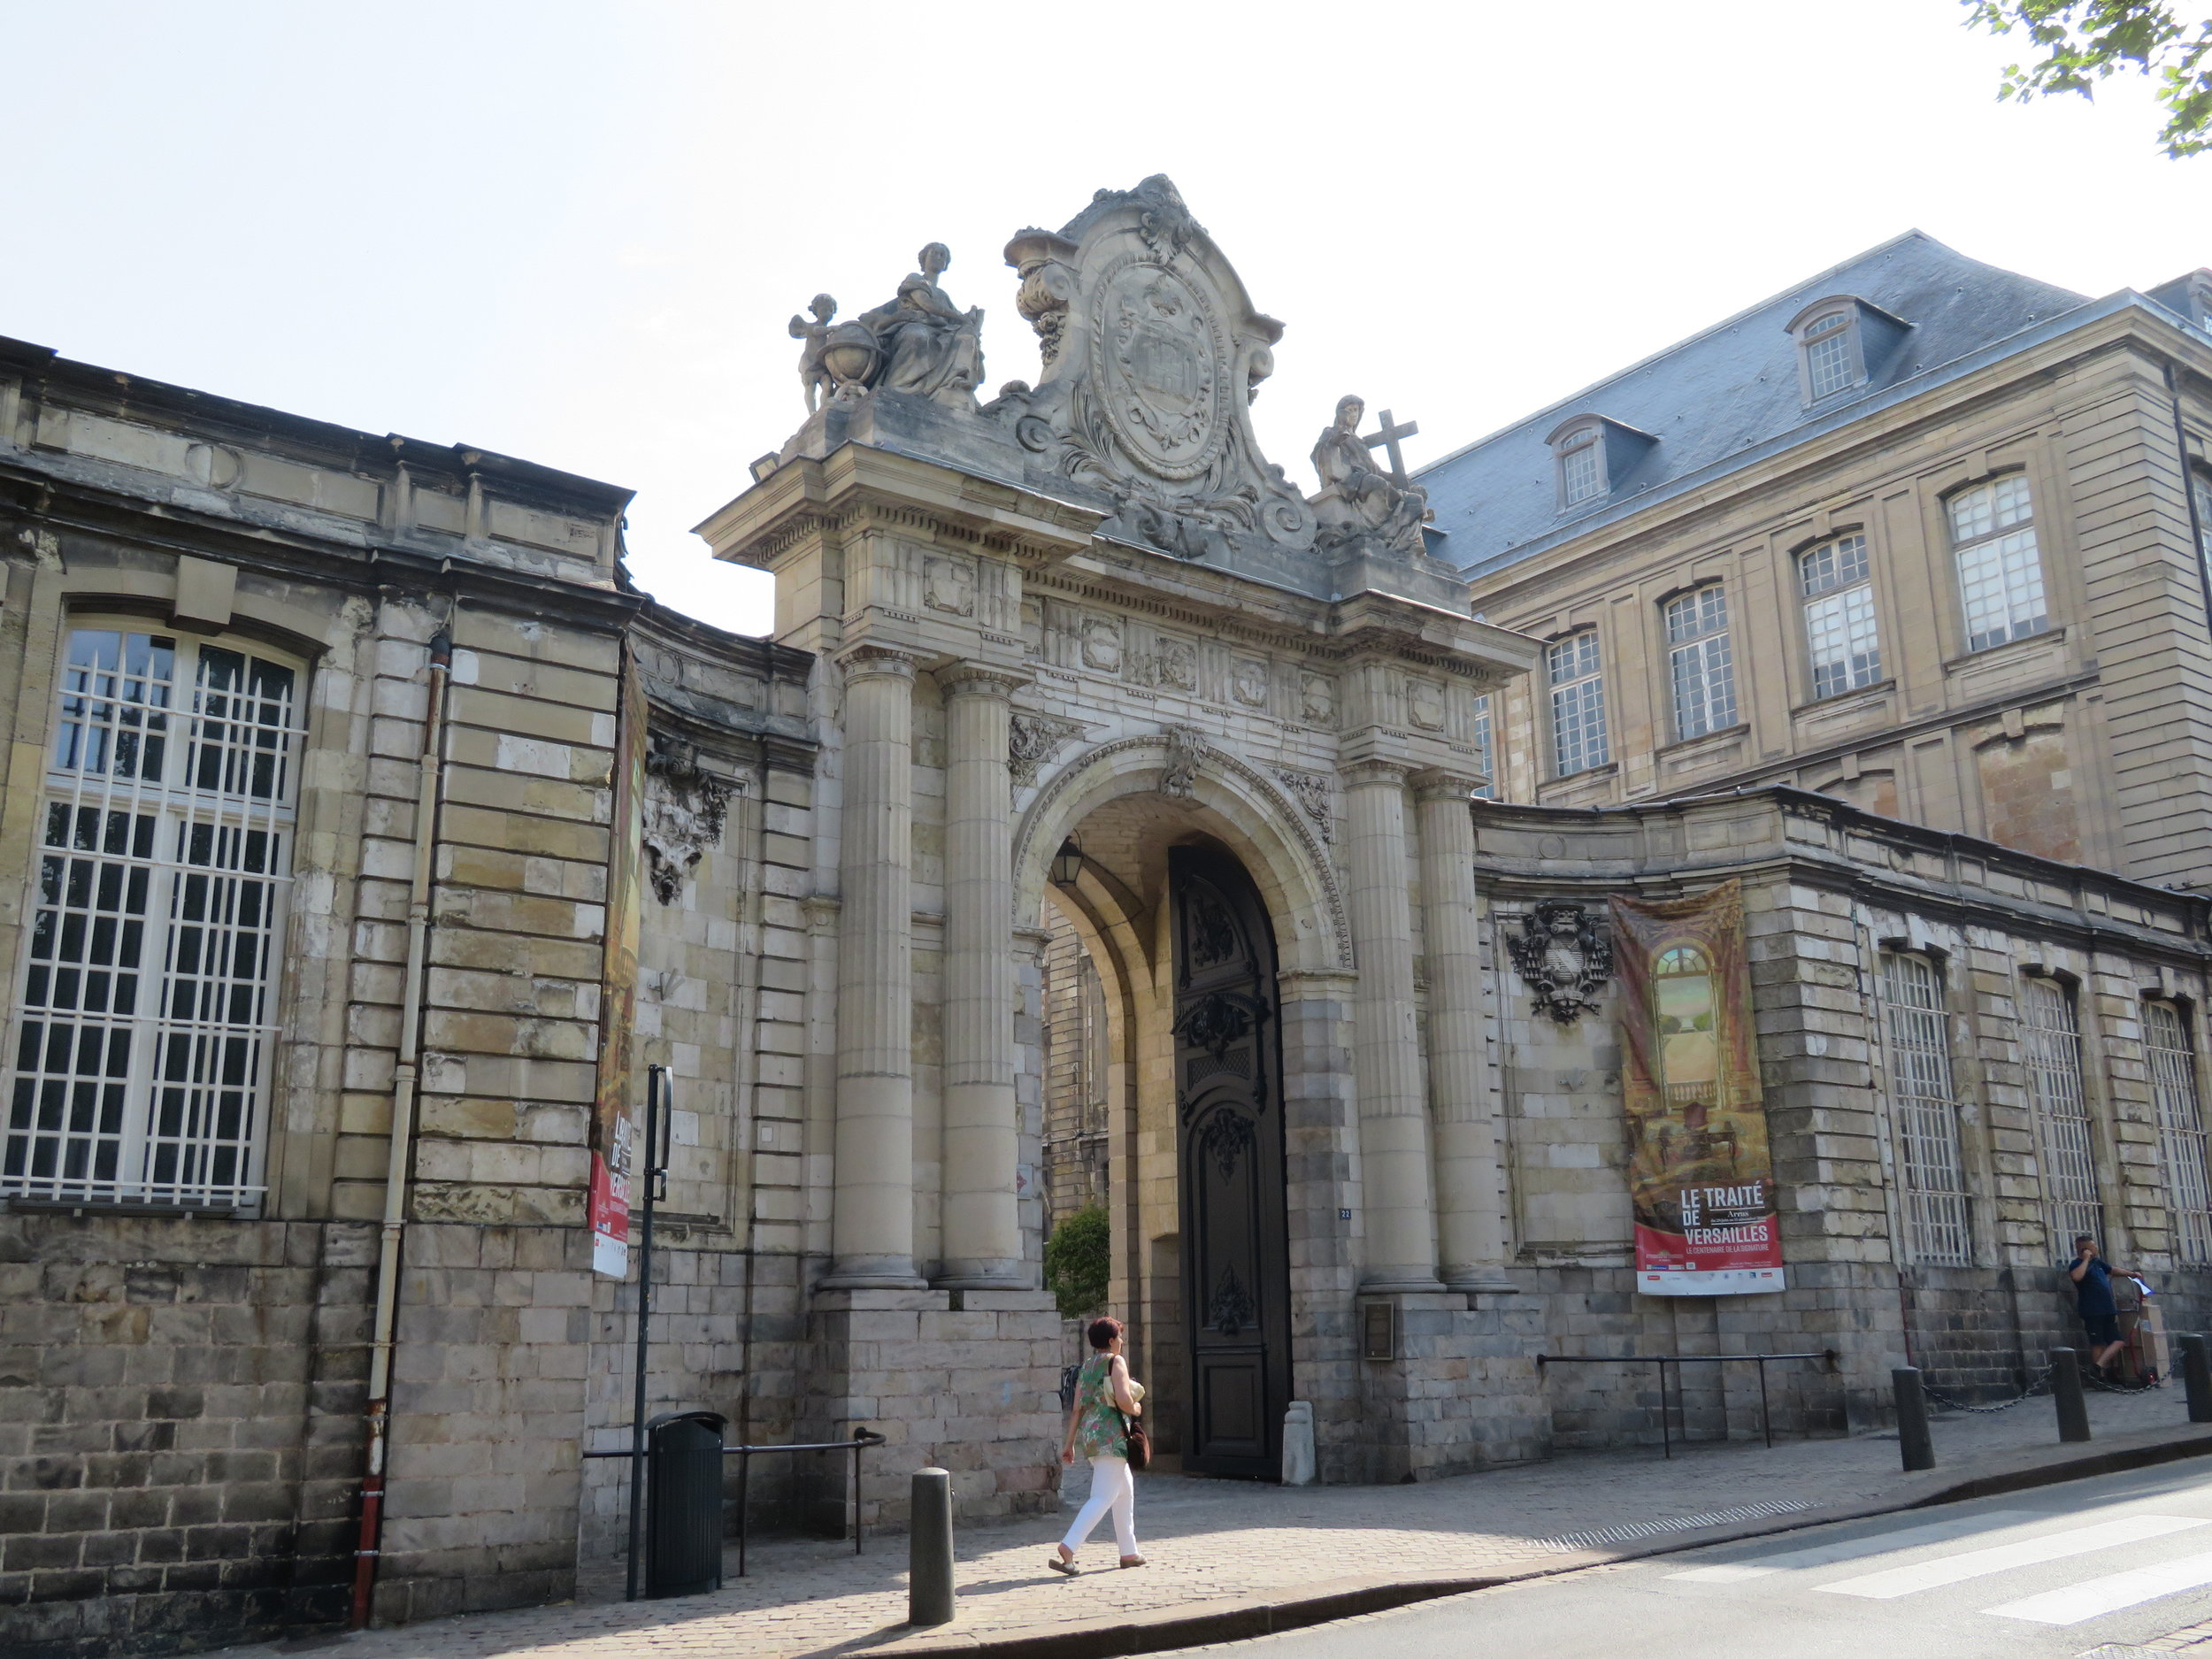 Entrance to Abbaye St. Vaast, now occupied in part by the Fine Arts Museum, was also closed.